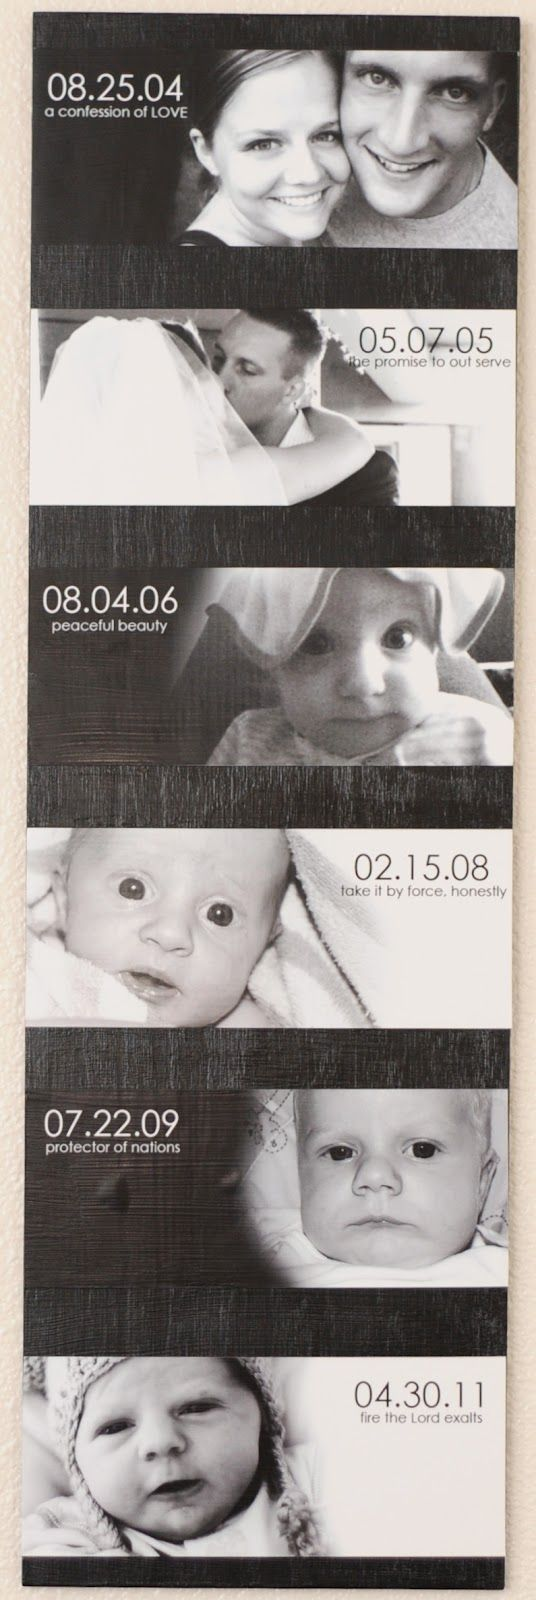 Combining most Important dates in life with photos. Maybe I can get this accomplished by February 1st. =)